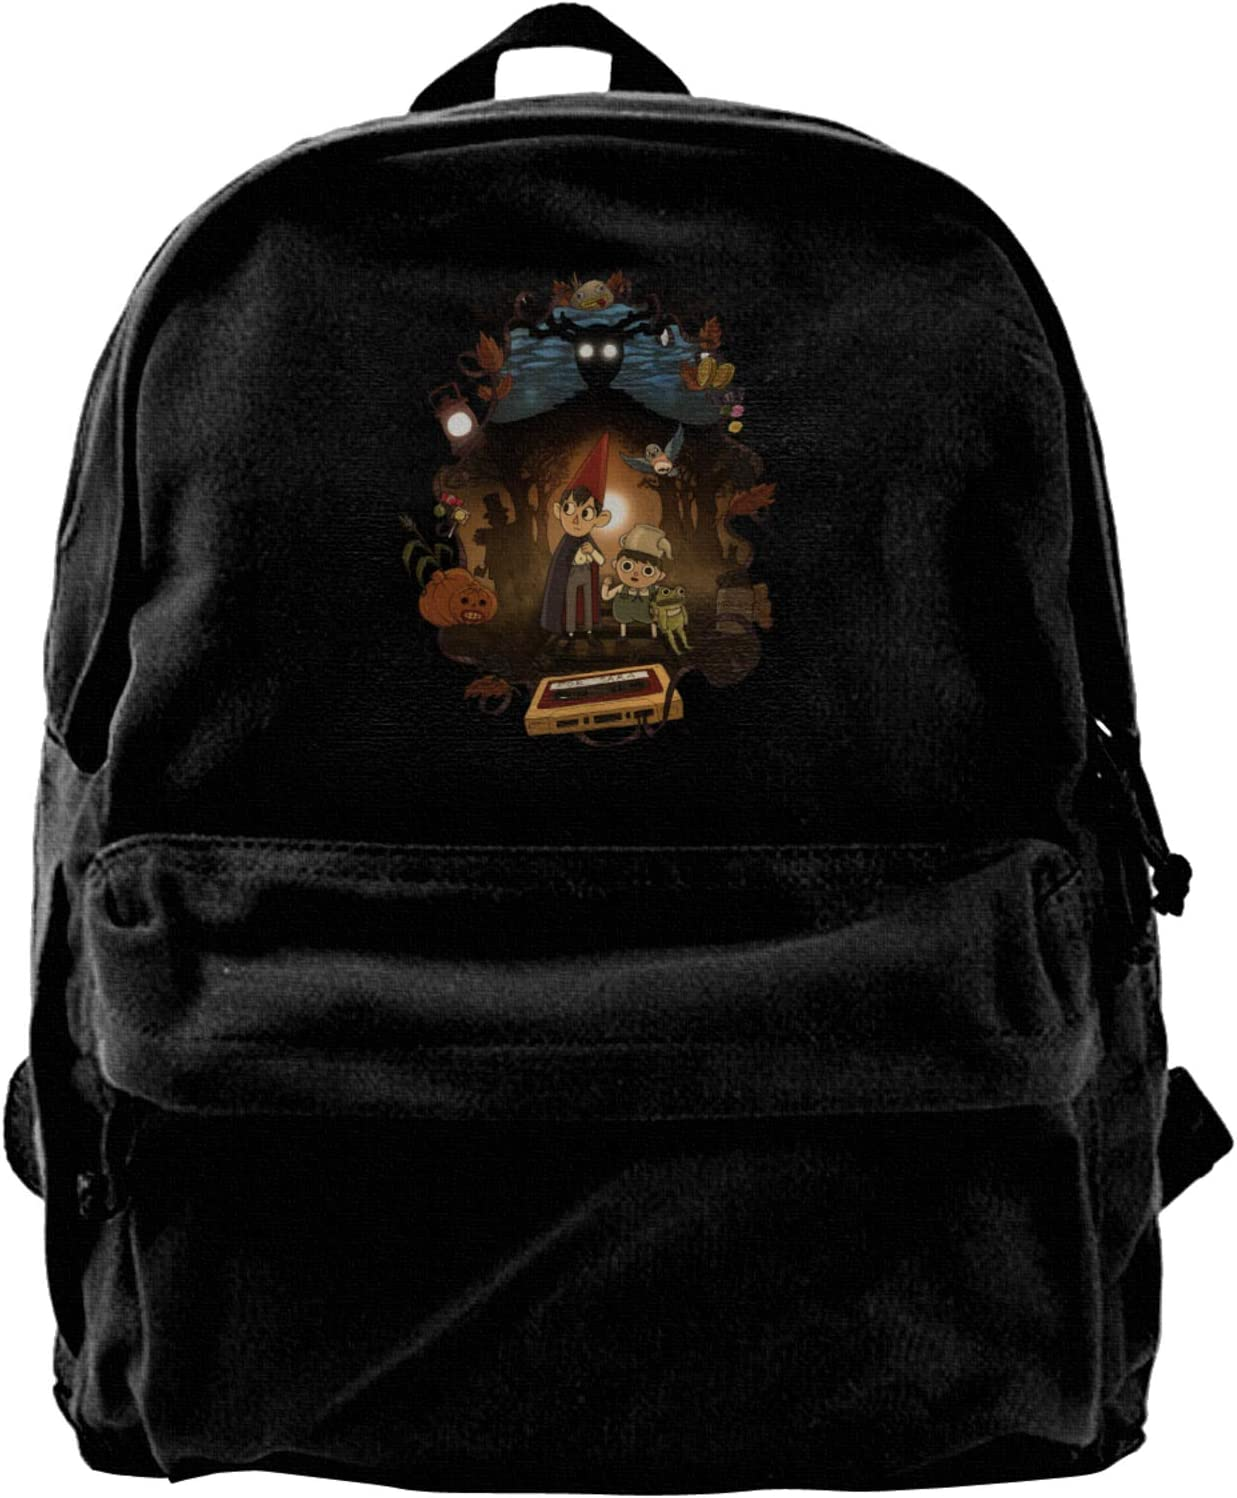 Over The Garden Wall Canvas Backpack 15.6 Inch Laptop School Backpack Travel Rucksack